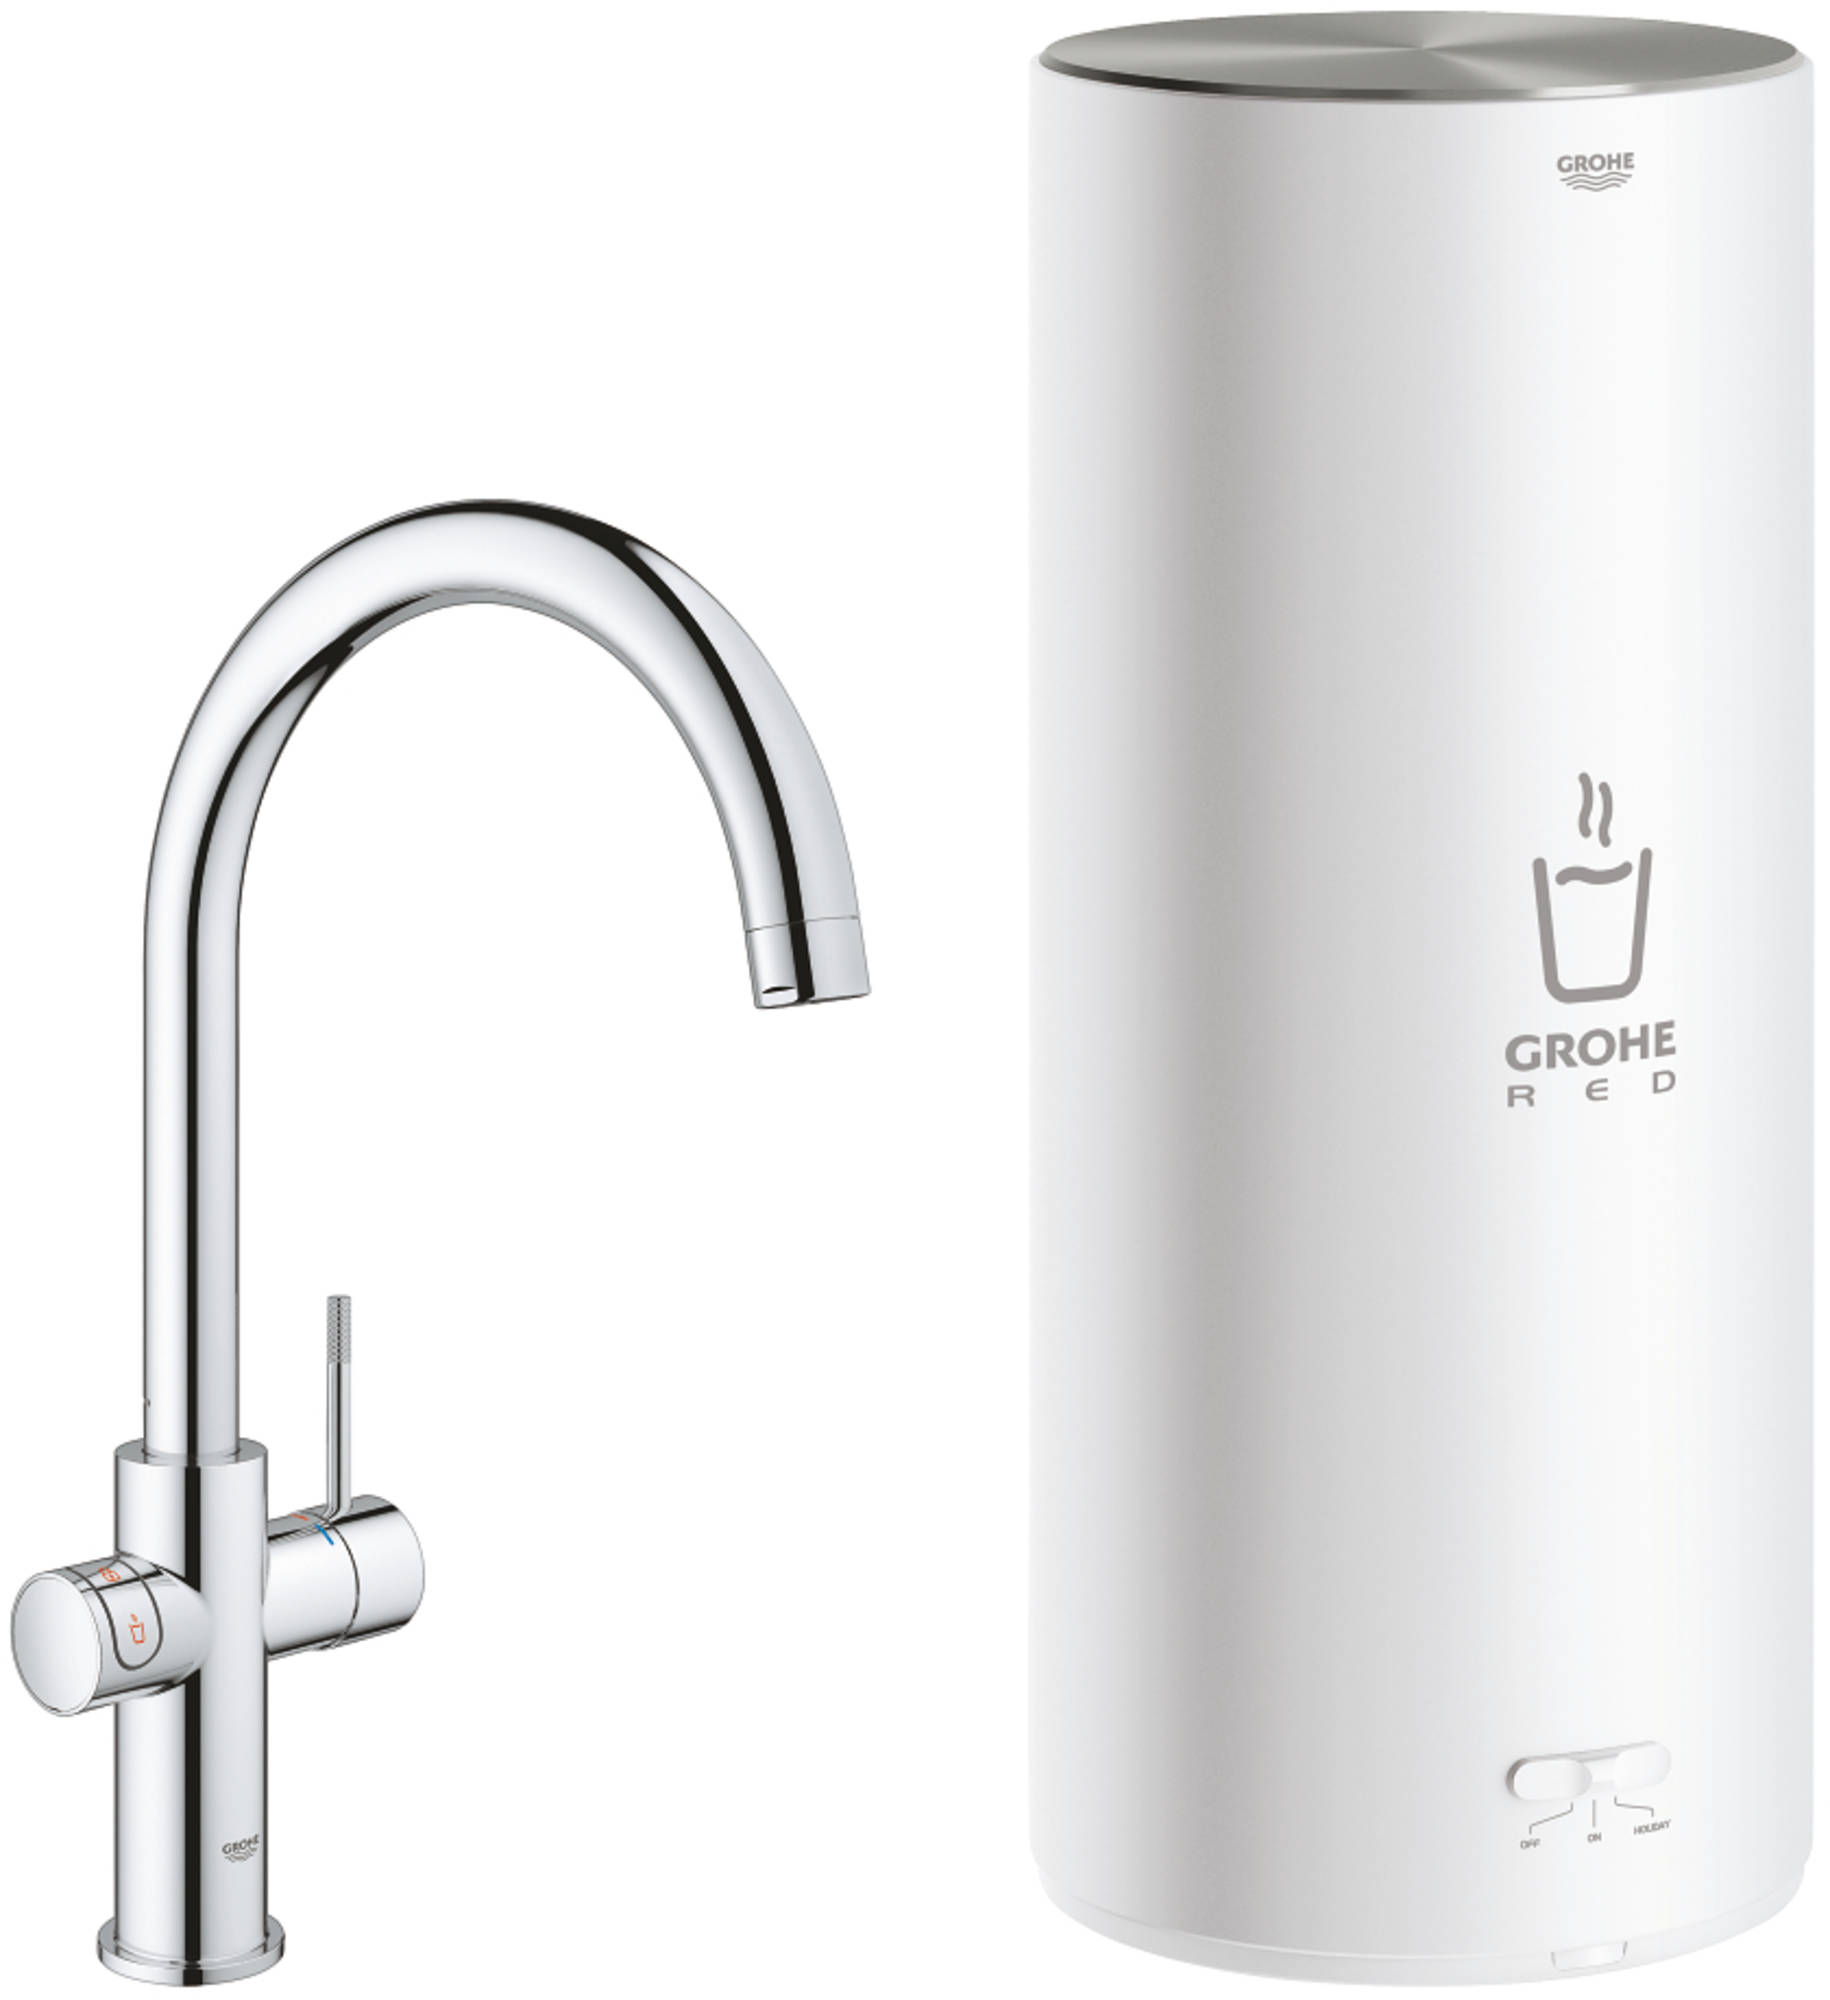 GROHE Red new Duo 3 in 1 Keukenmengkraan en combi boiler 30031 chroom